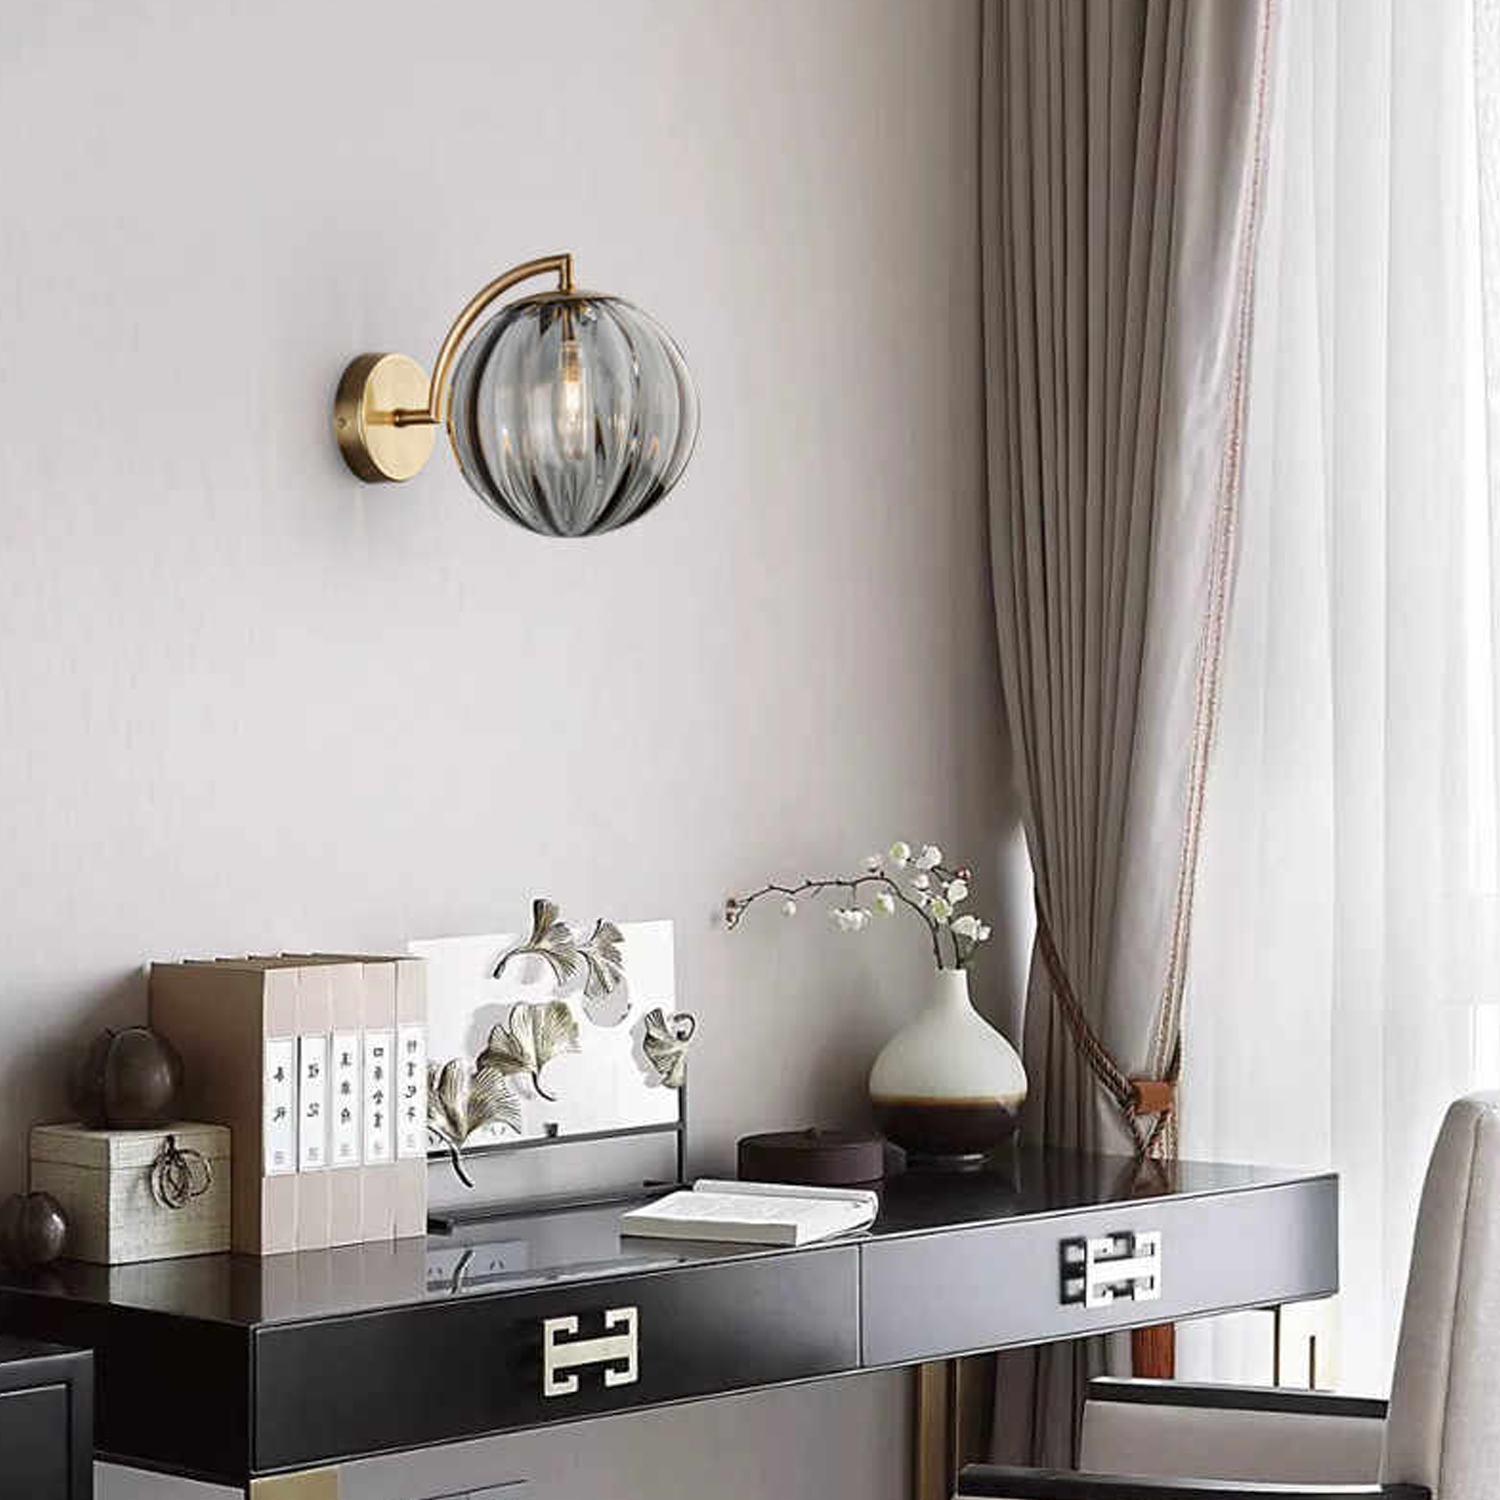 Lady-Luck-Wall-Light-Lifestyle-1